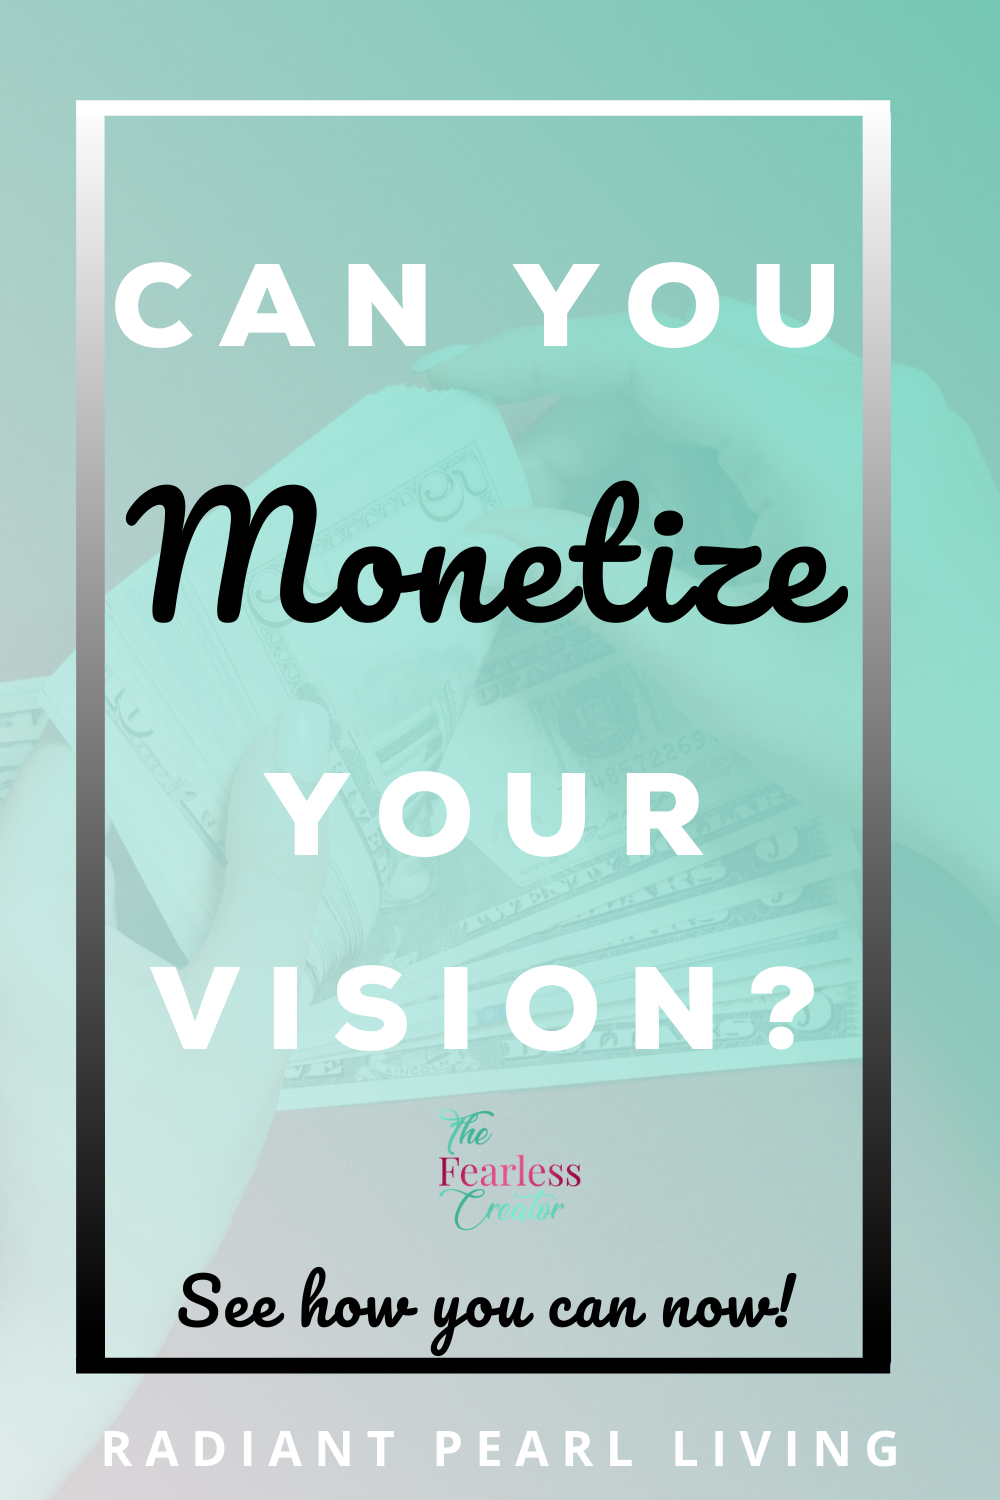 Can you monetize your vision for your blog, podcast or business? We share how exposure and preparation can help you further your vision through monetization and a widespread call for support.